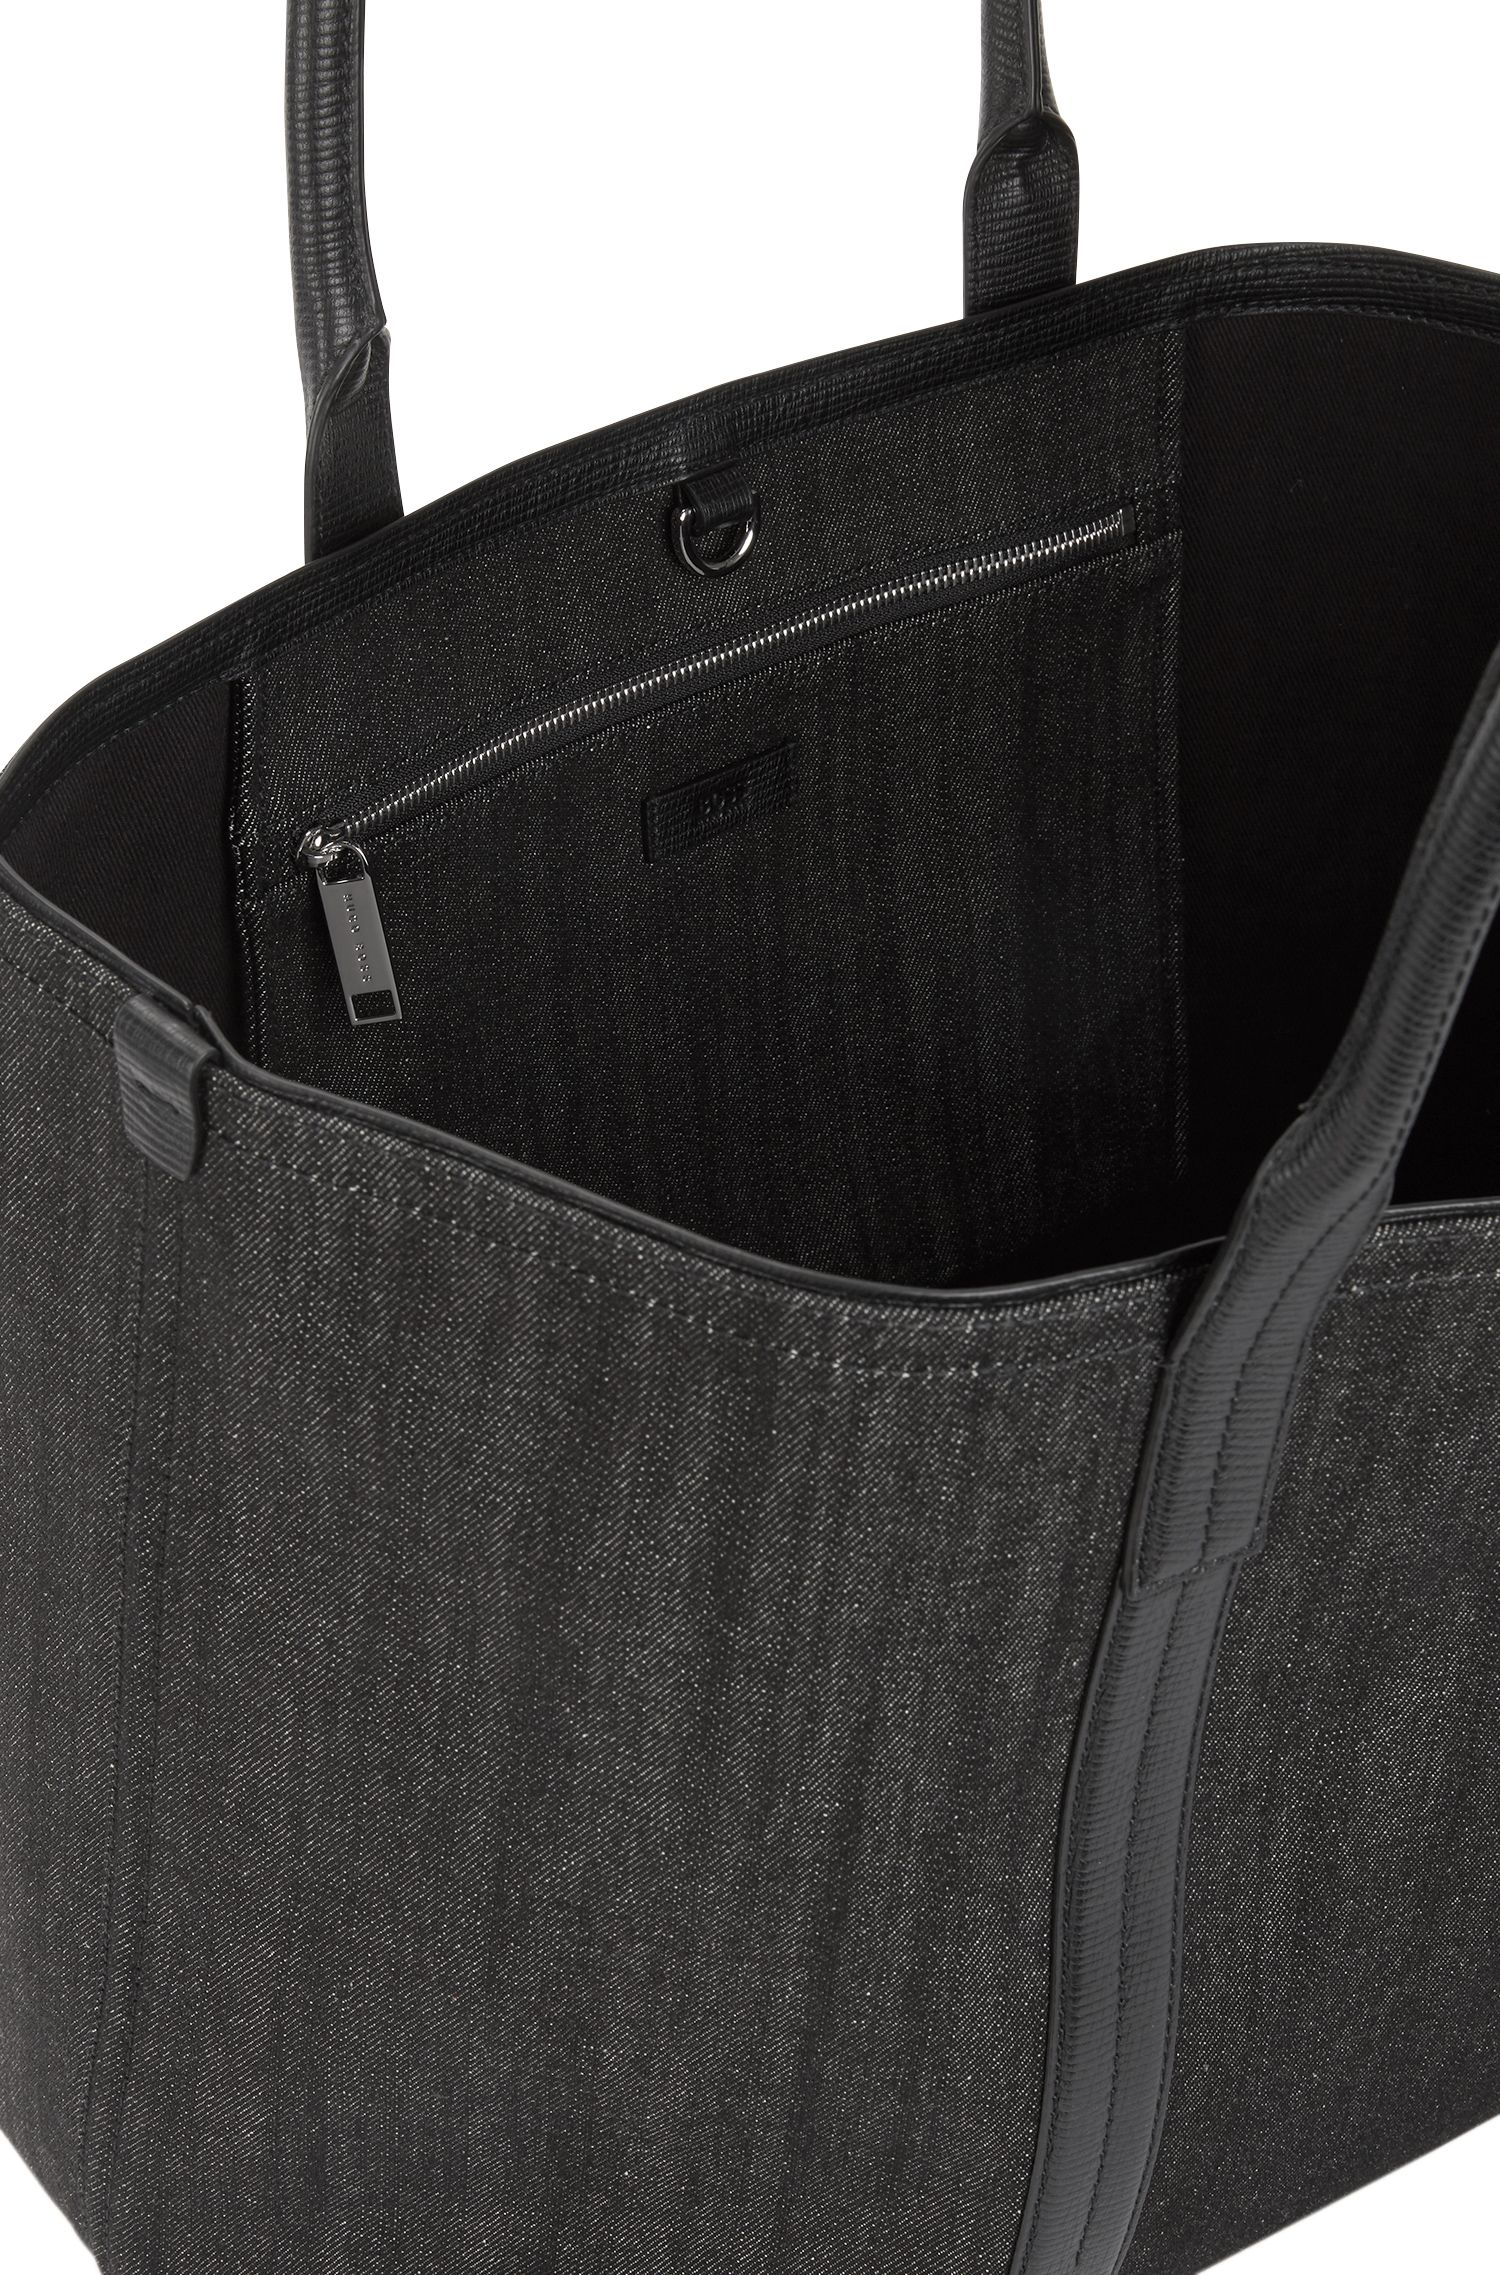 Denim Tote Bag | Cannes Tote Denim